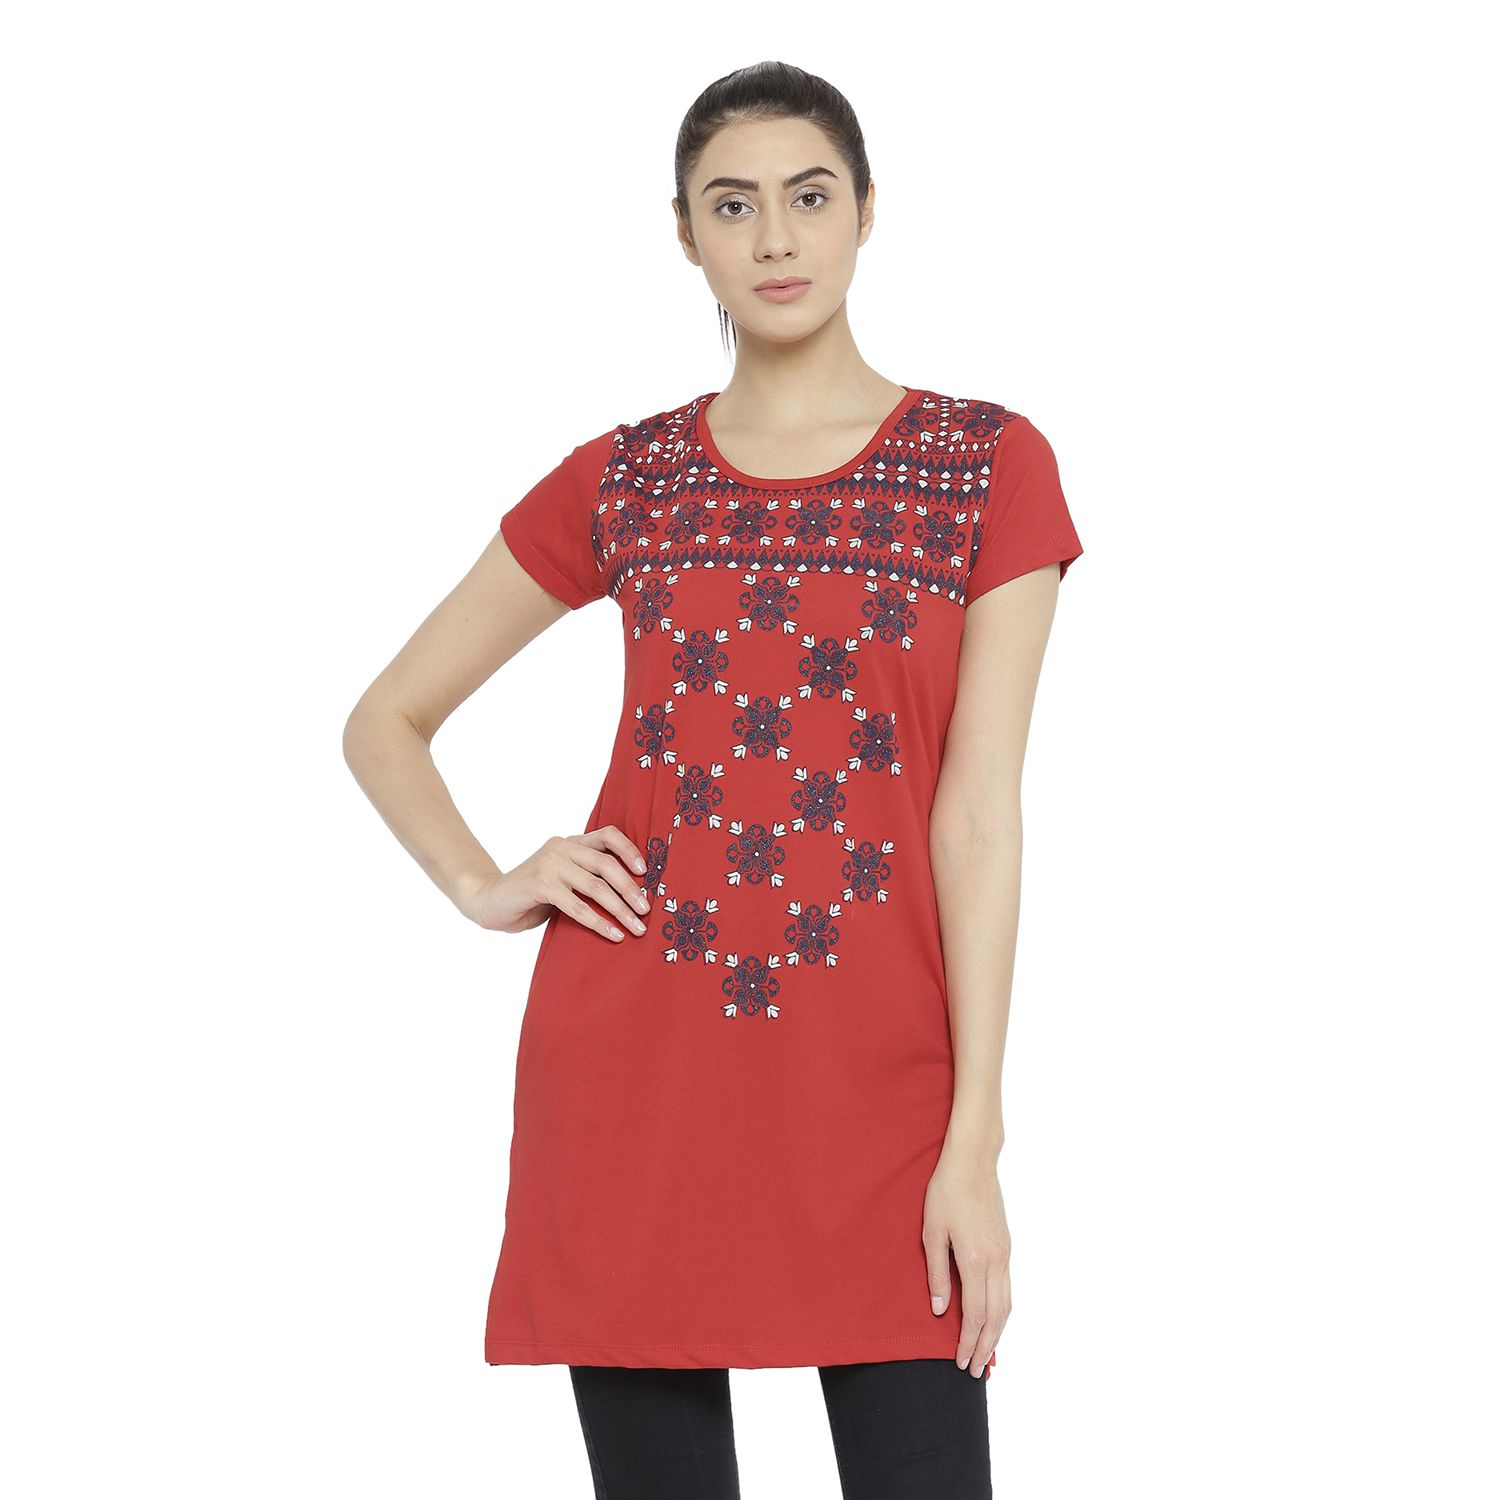 a283e361dcd Neva Cotton Tunics - Red - Buy Neva Cotton Tunics - Red Online at Best  Prices in India on Snapdeal